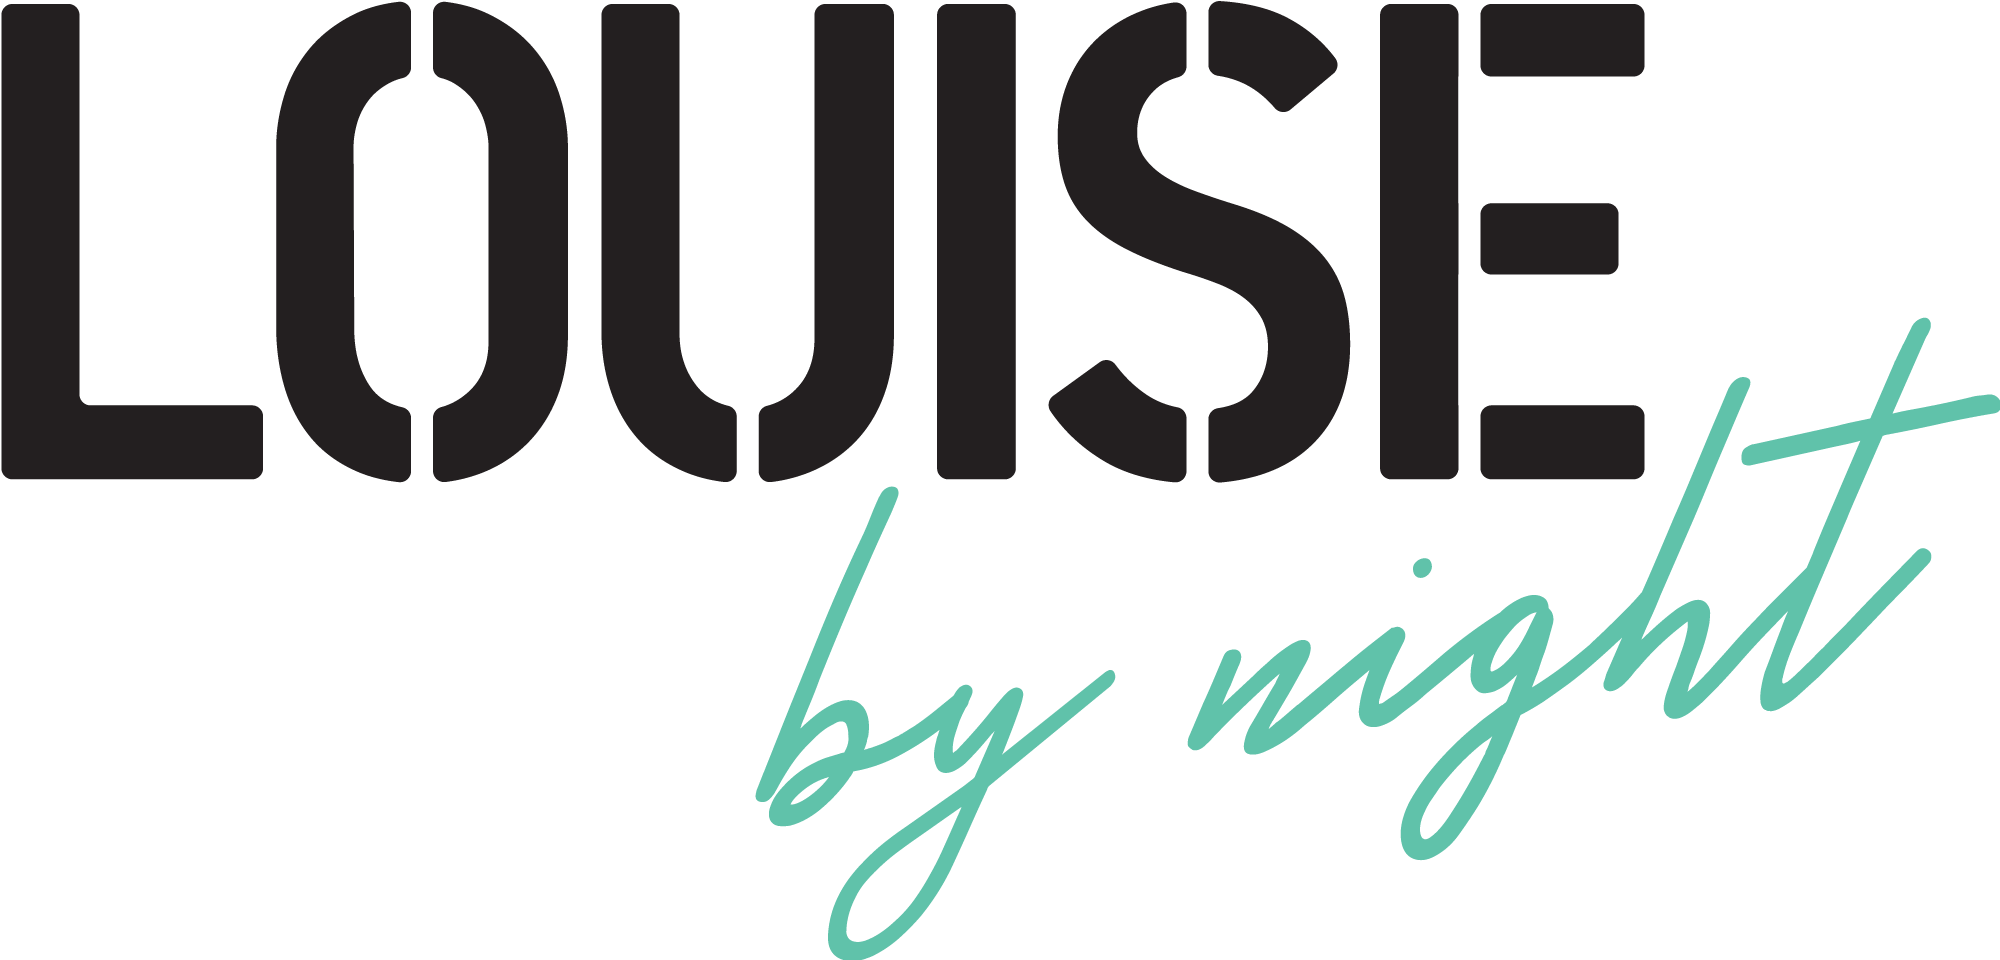 Louise-by-night-logo.png